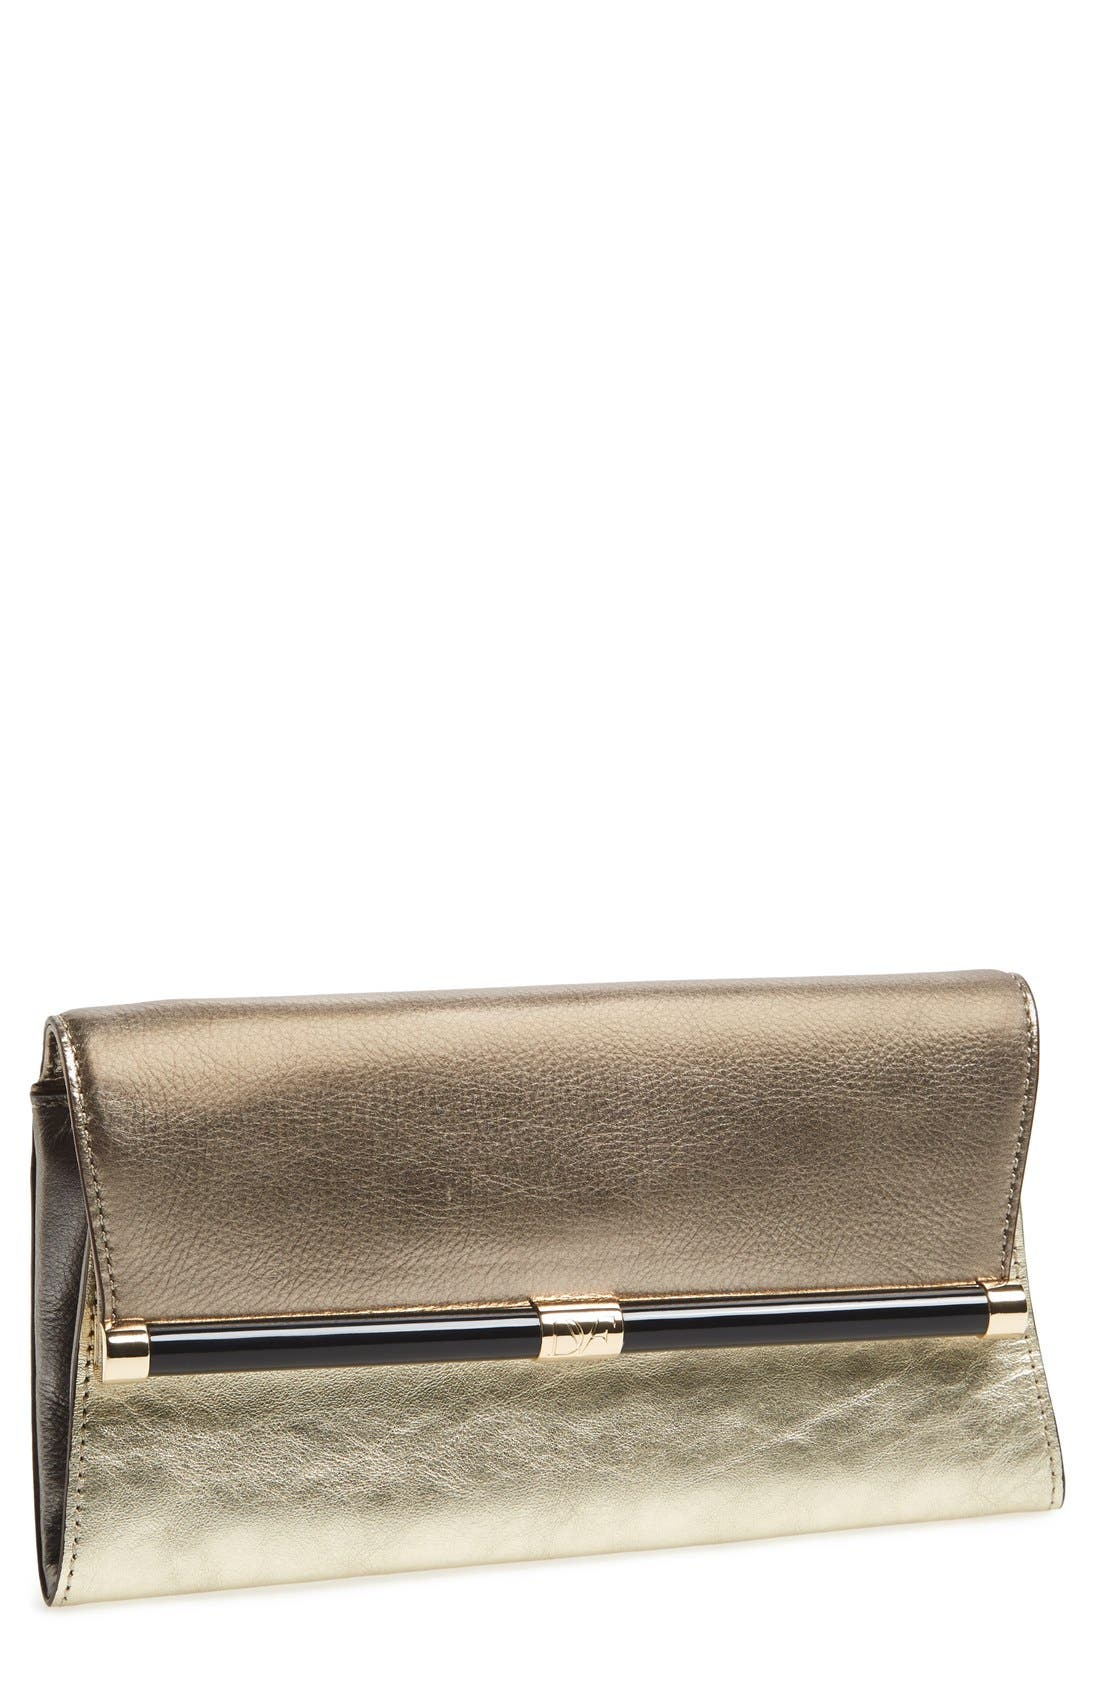 '440 - Mixed Metallic' Envelope Clutch,                         Main,                         color, Tinsel/ Light Gold/ Pewter